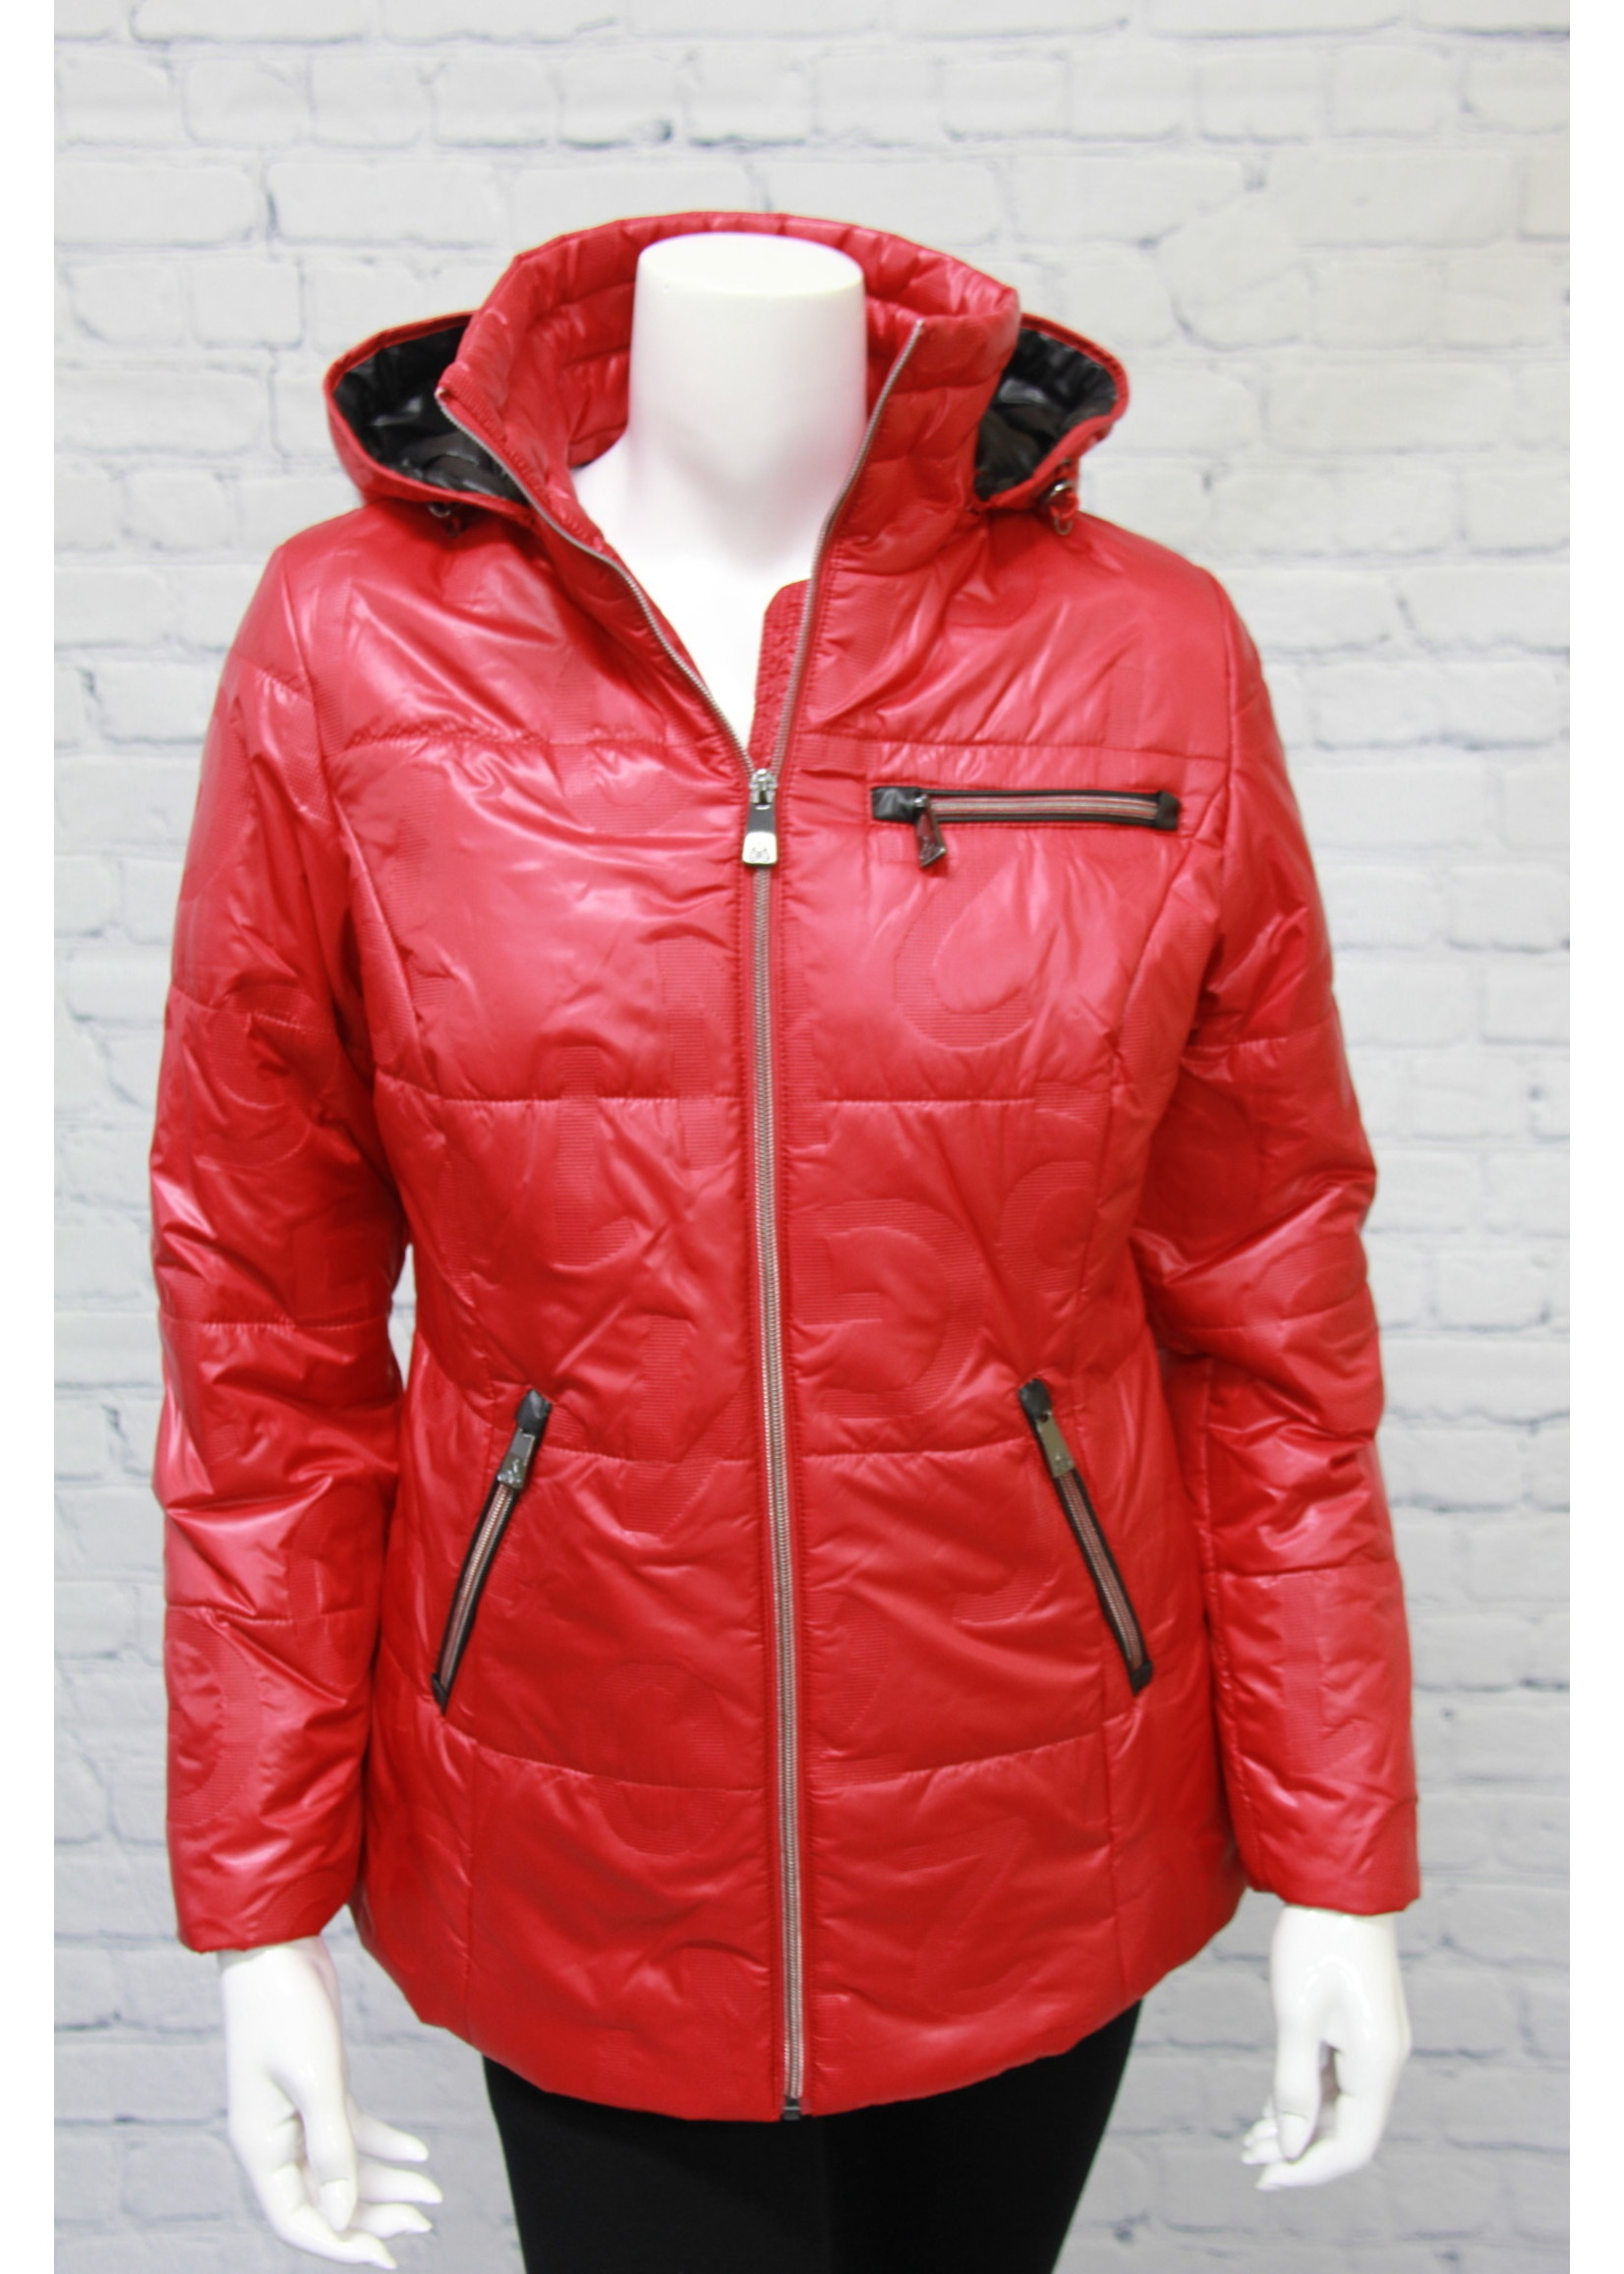 Junge Scarlet Jacket with Removable Hood